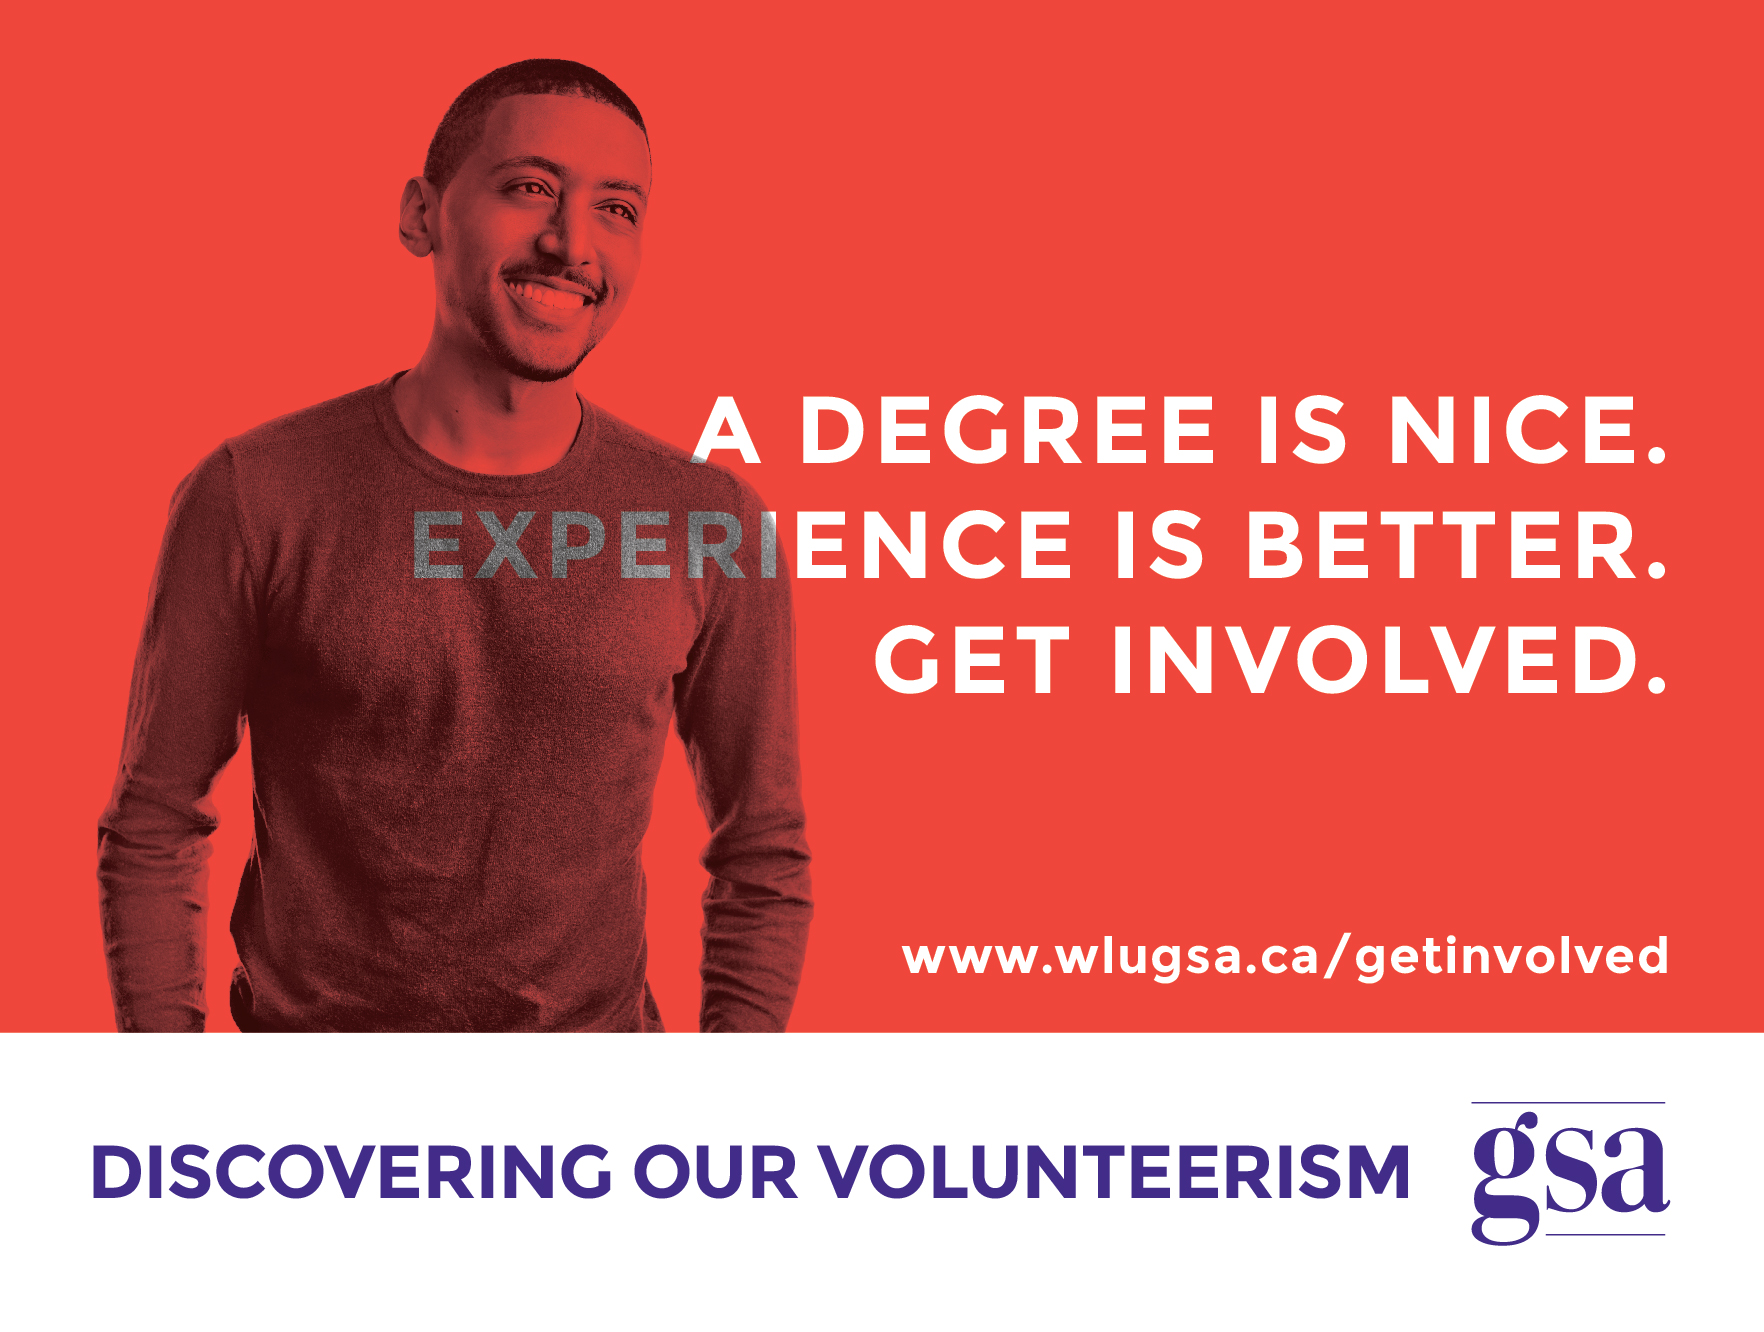 """A degree is nice. Experience is better. Get involved."" - Nathaniel"